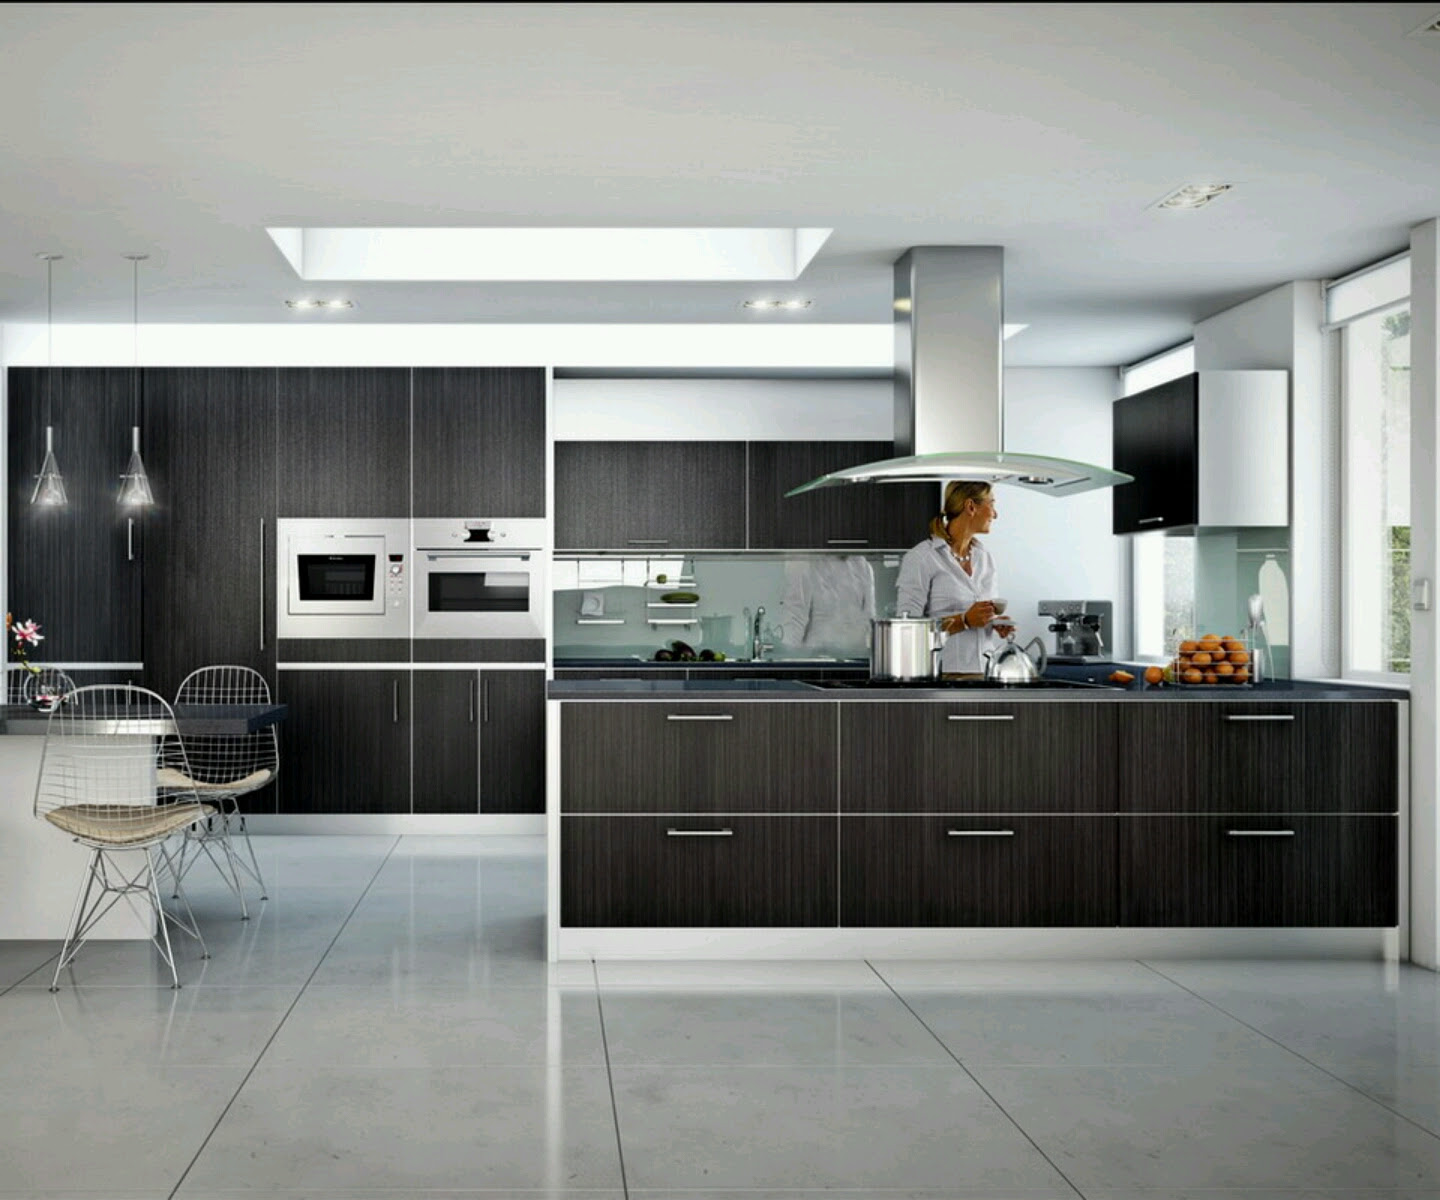 30 Modern Kitchen Design Ideas The WoW Style